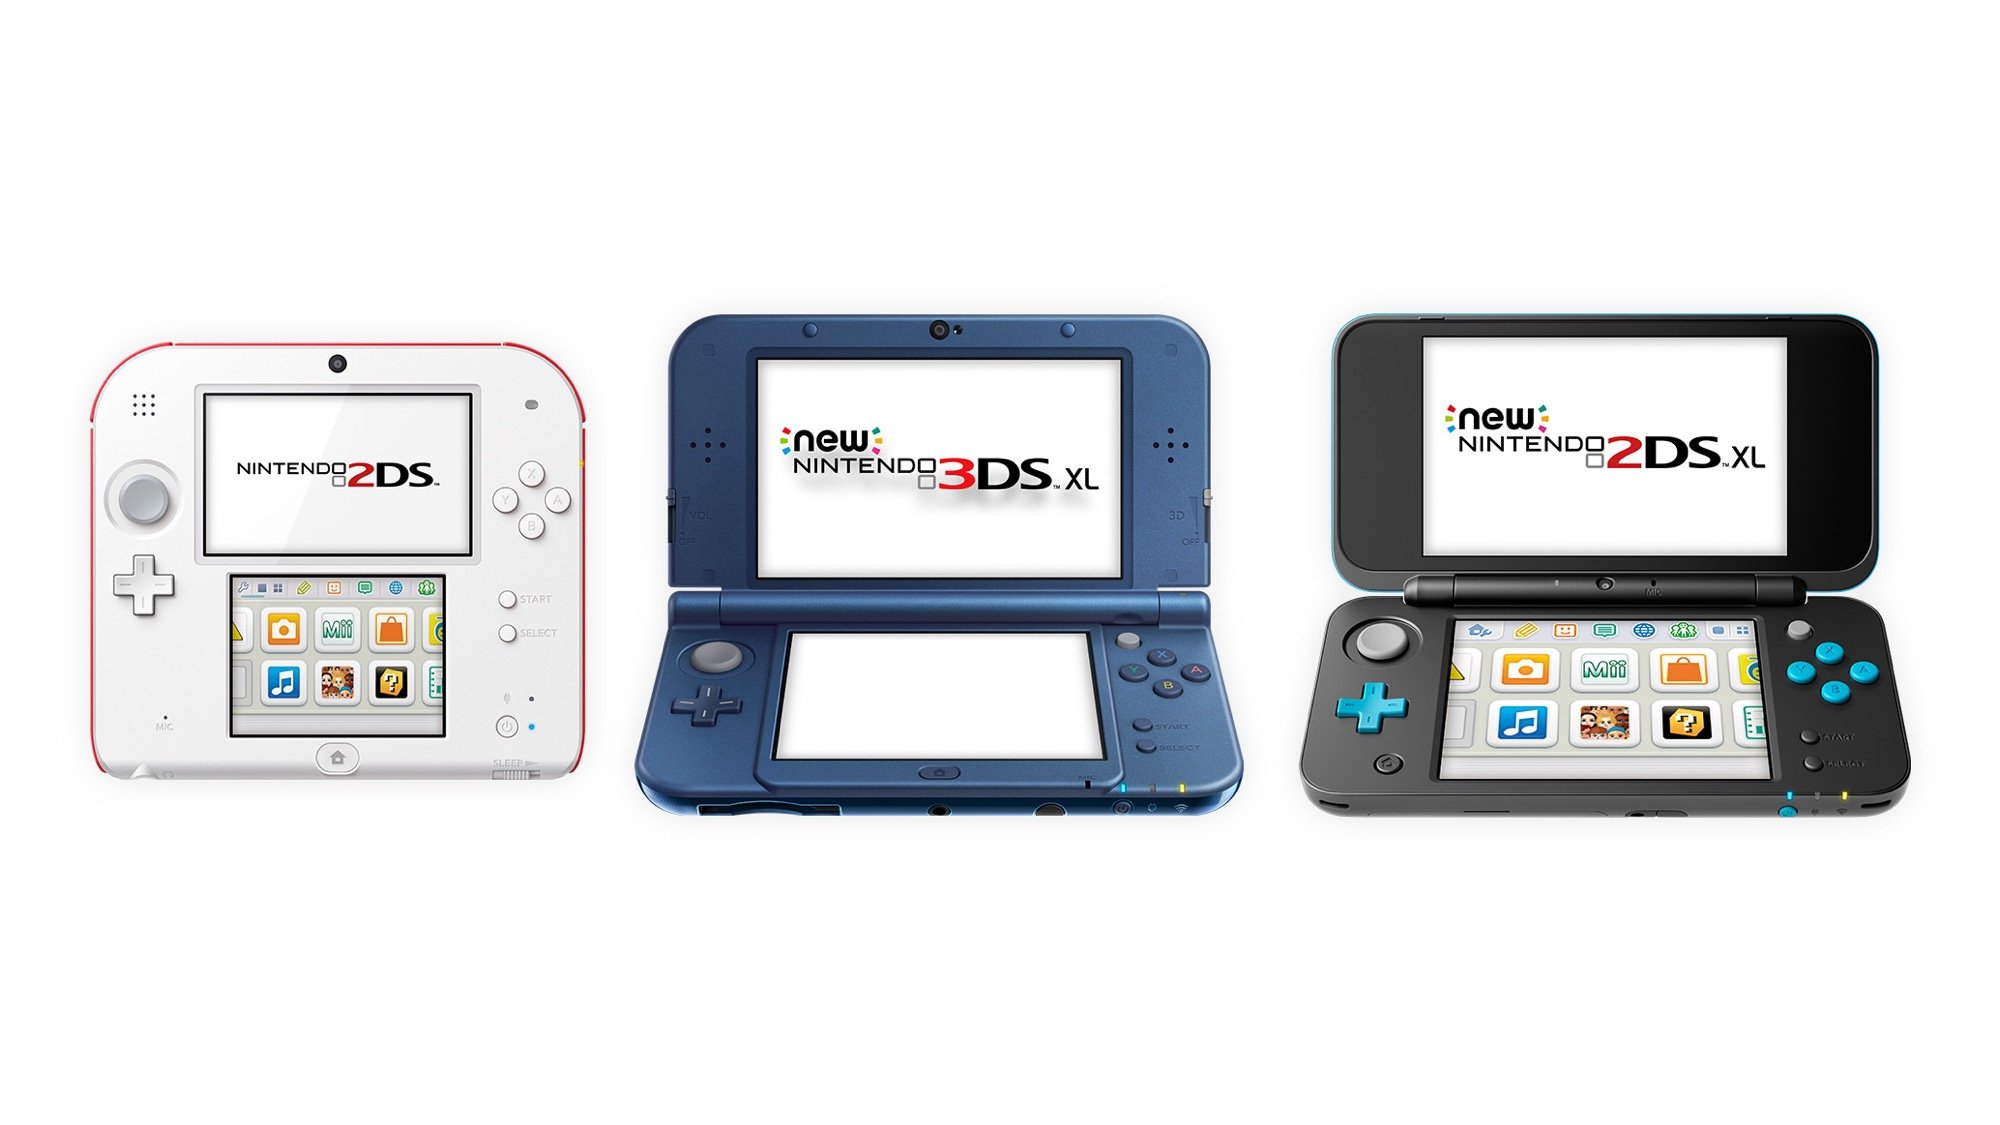 The Top 10 Best-Selling Games For Wii U, 3DS, Wii And Nintendo DS